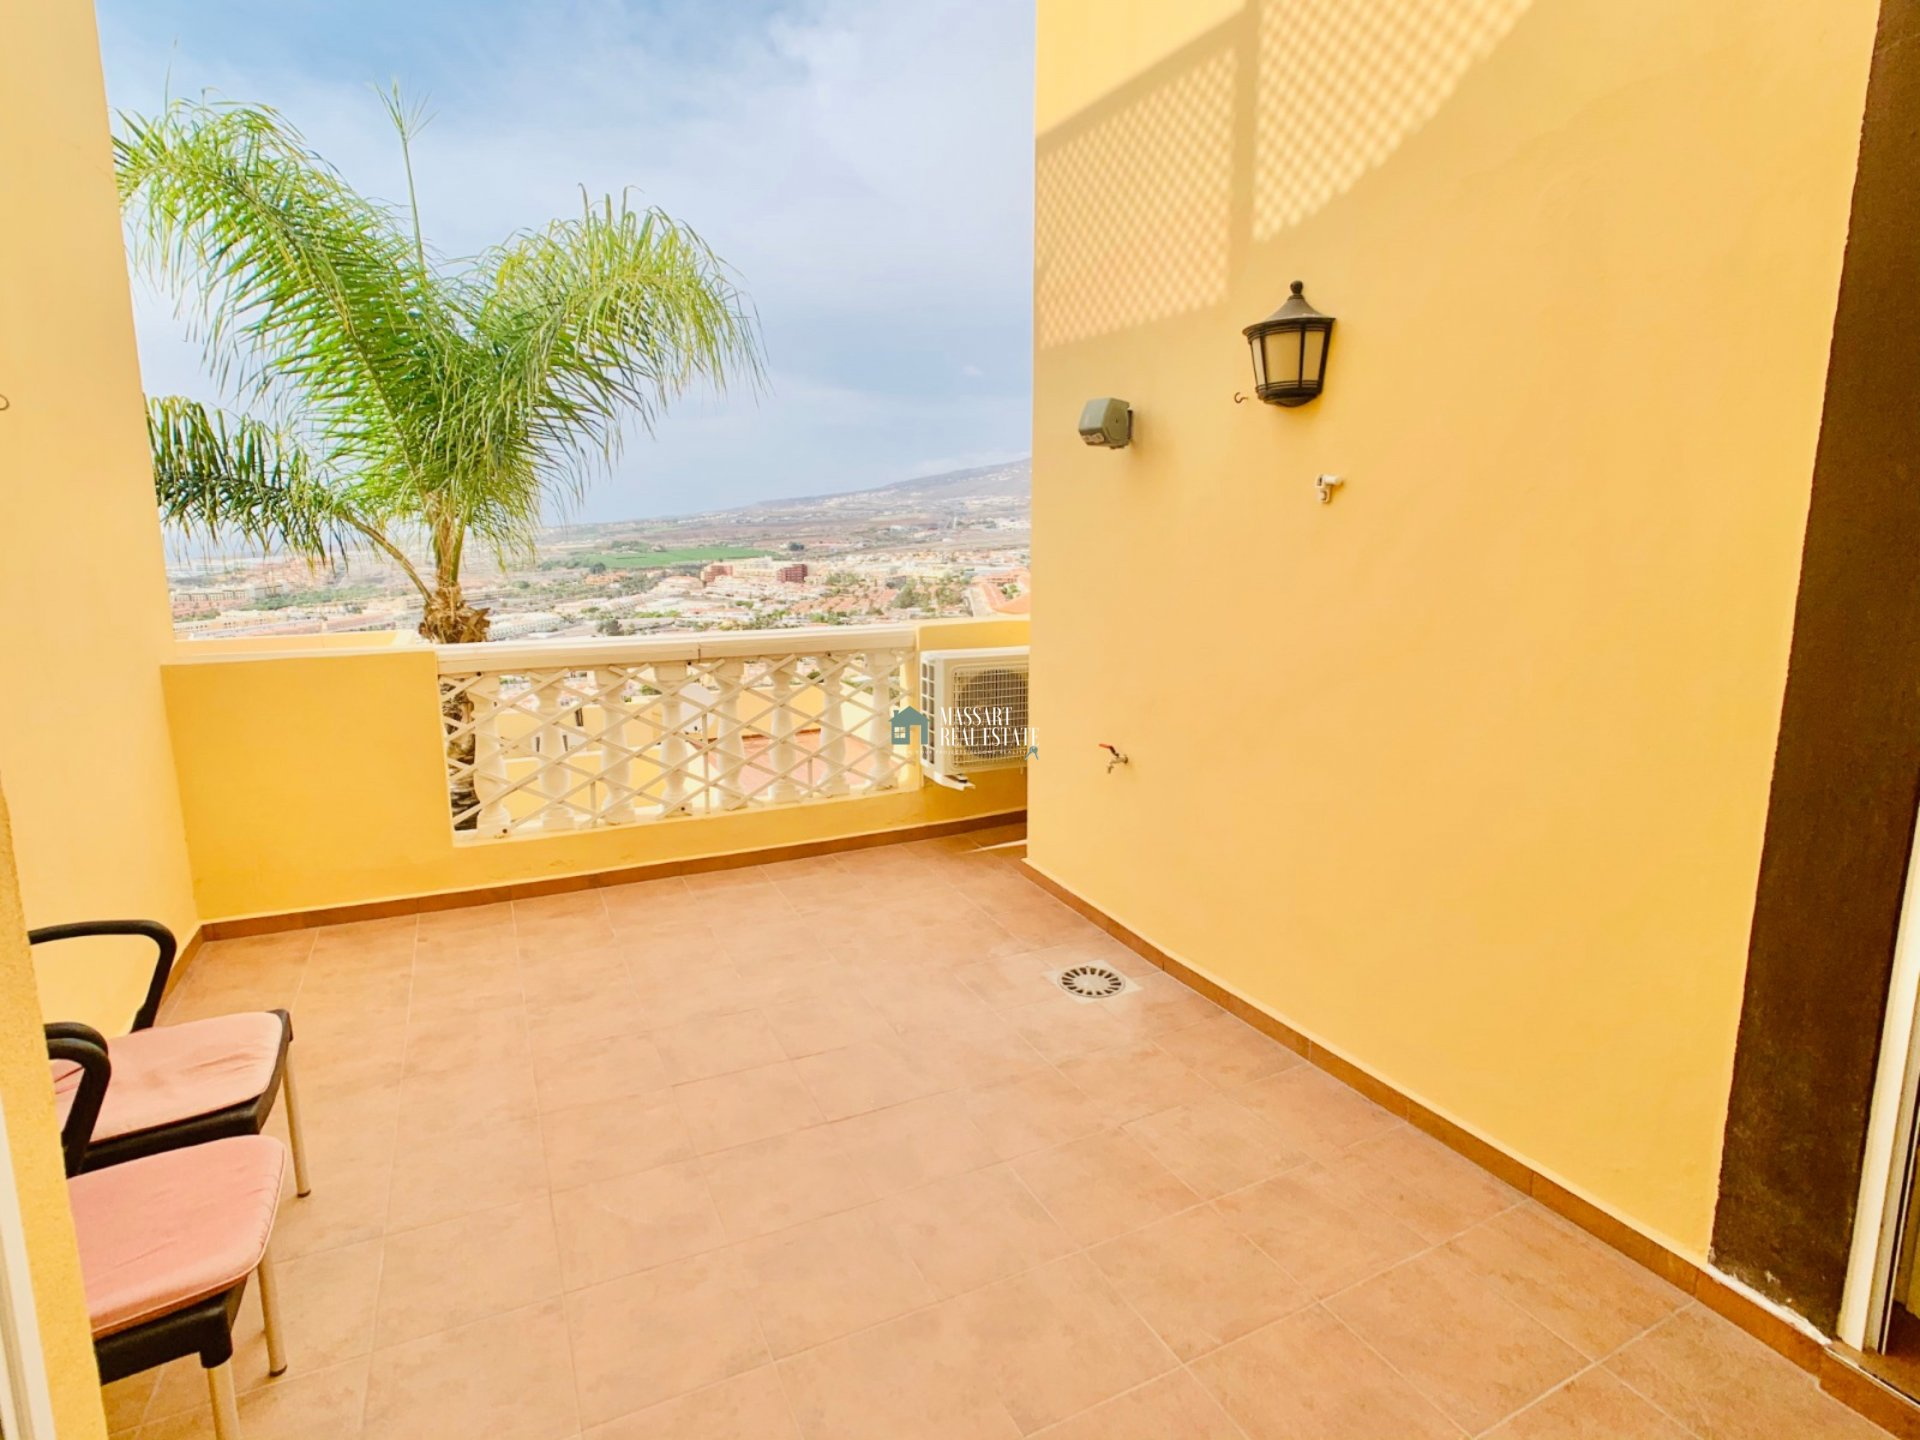 Renovated apartment in very good condition located in the popular residential area Balcón del Atlántico , Torviscas.